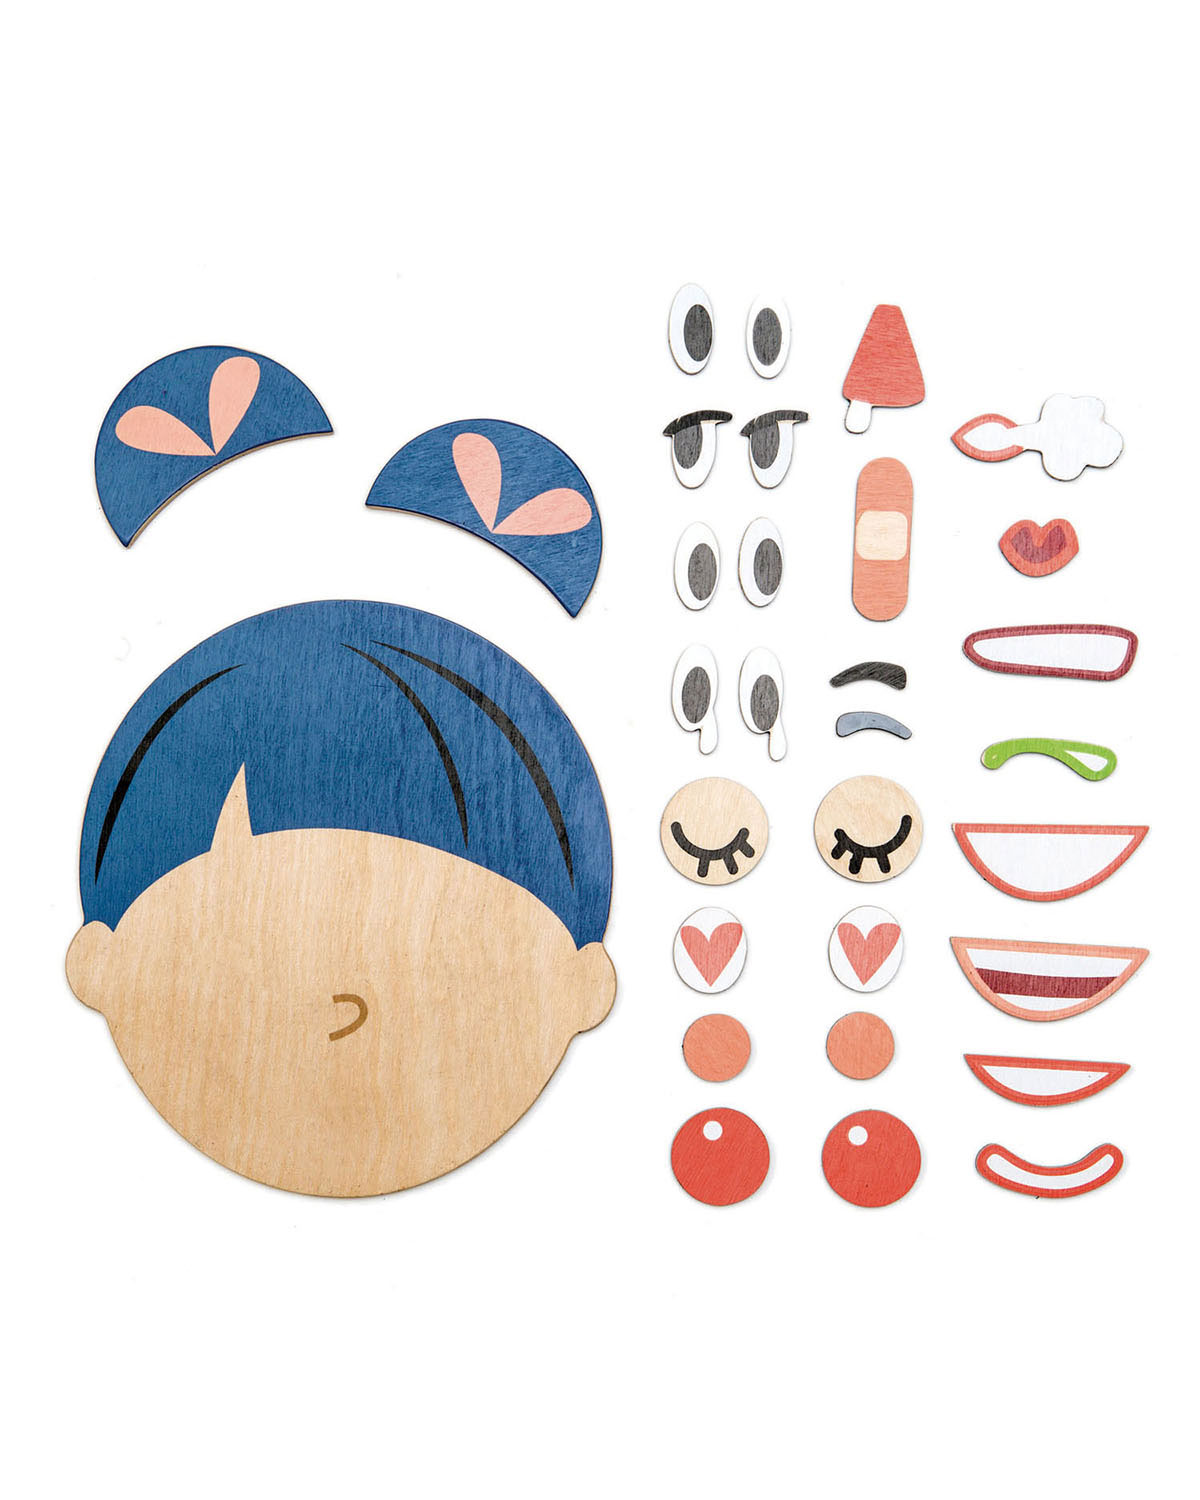 Tender Leaf Toys What's Up Build-A-Face Play Set